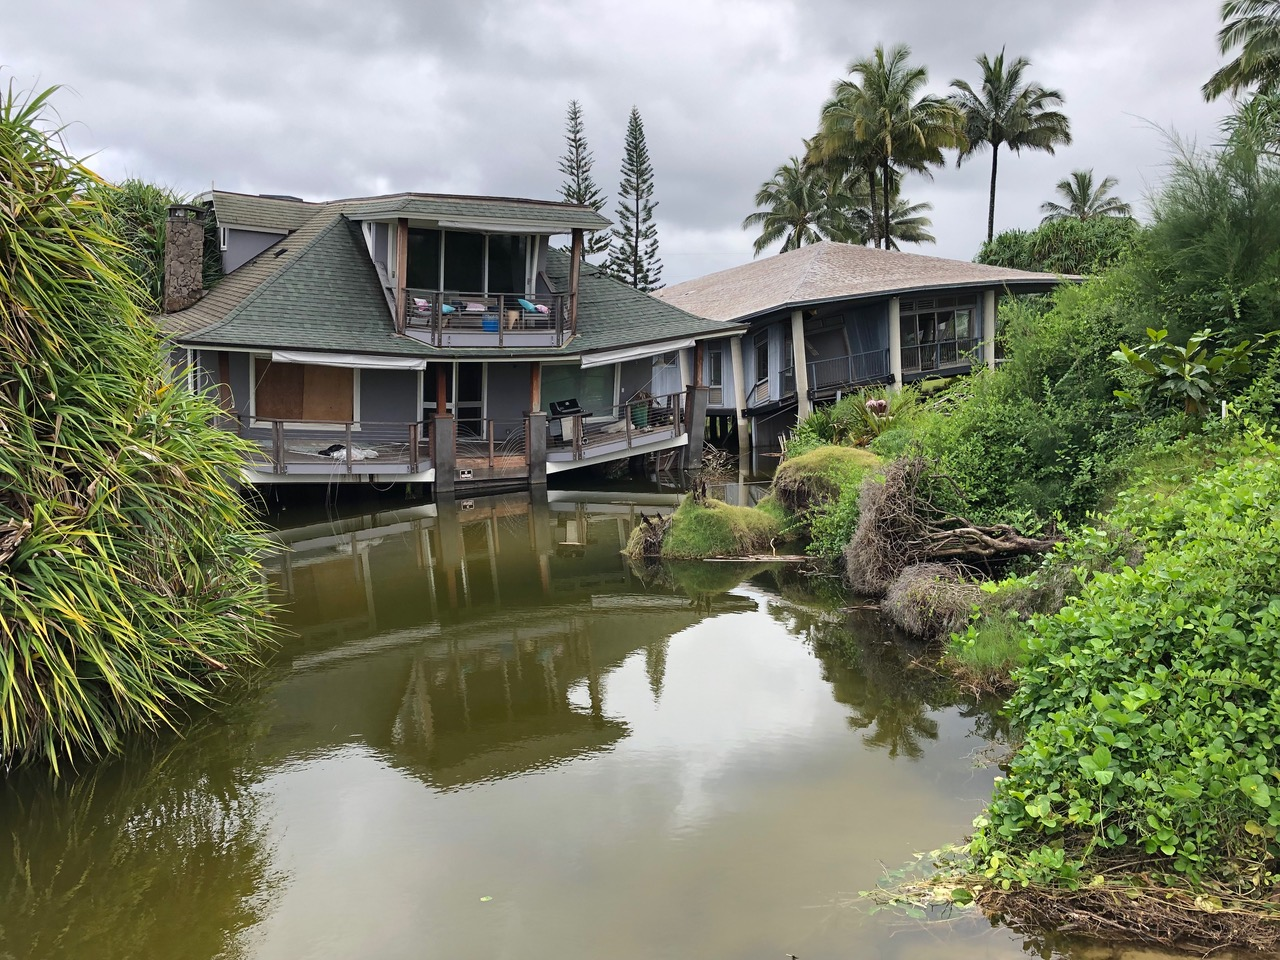 We then went on to the Beach in Hanalei and saw houses sank in the sand below them from the last devastating flash flood in April 2018